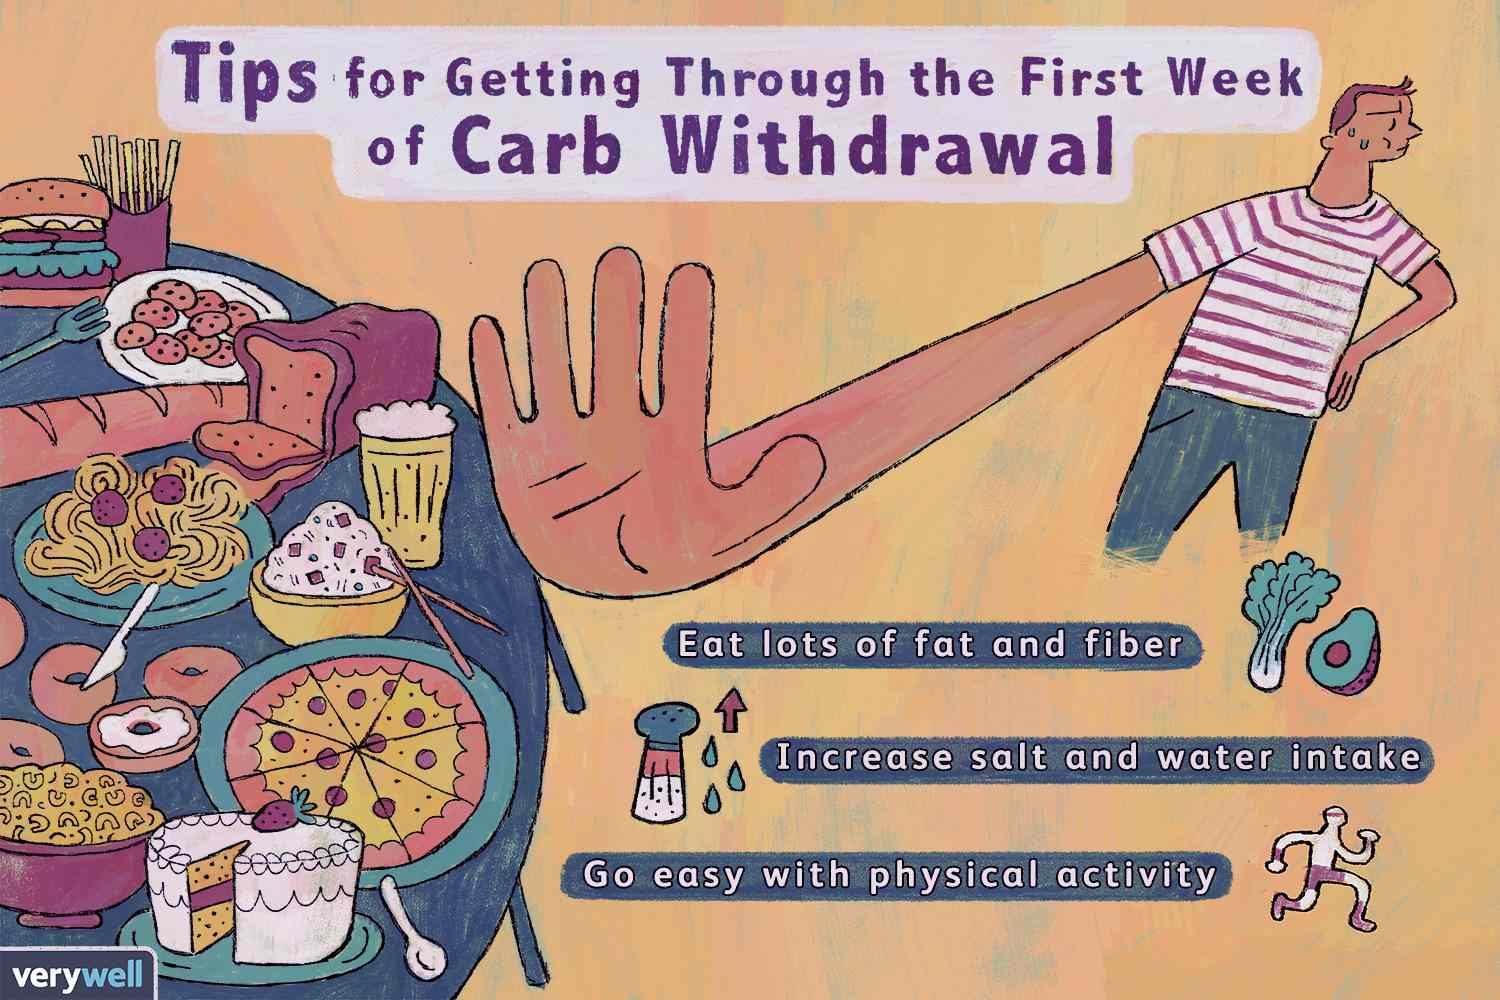 Tips for getting through the first week of carb withdrawal.